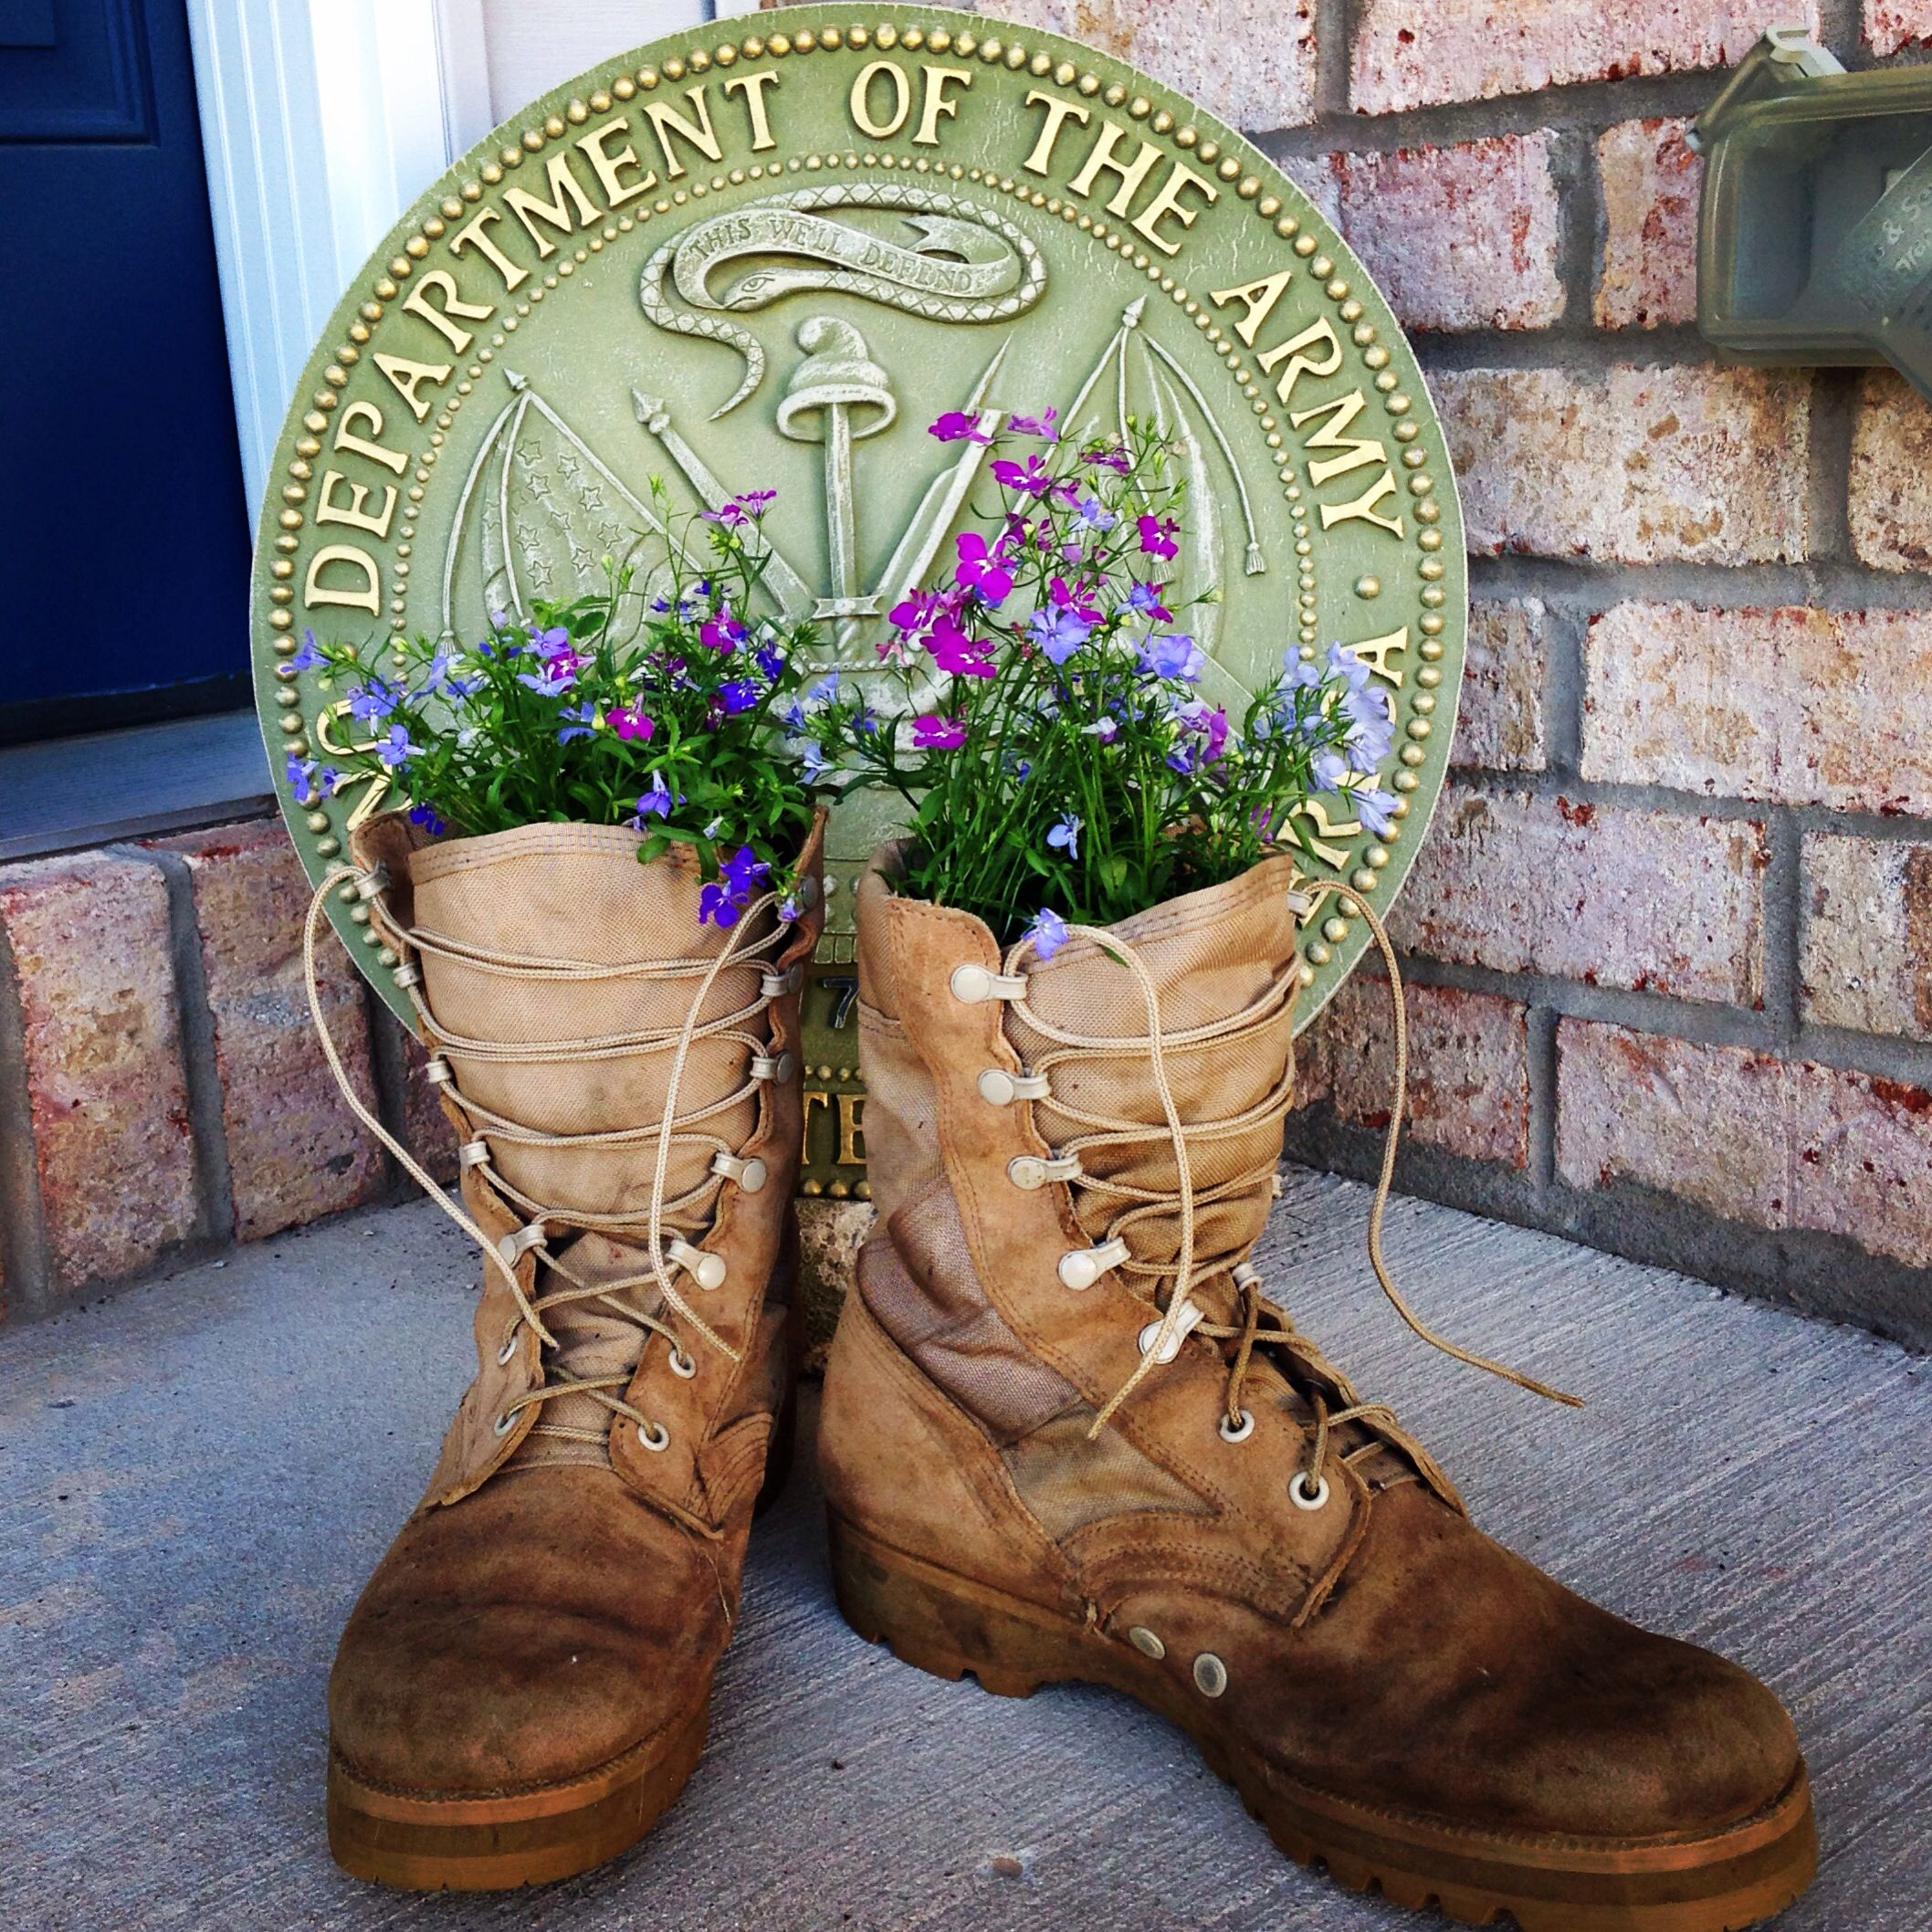 Military Boots As Planters Outdoor Fun Combat Boots